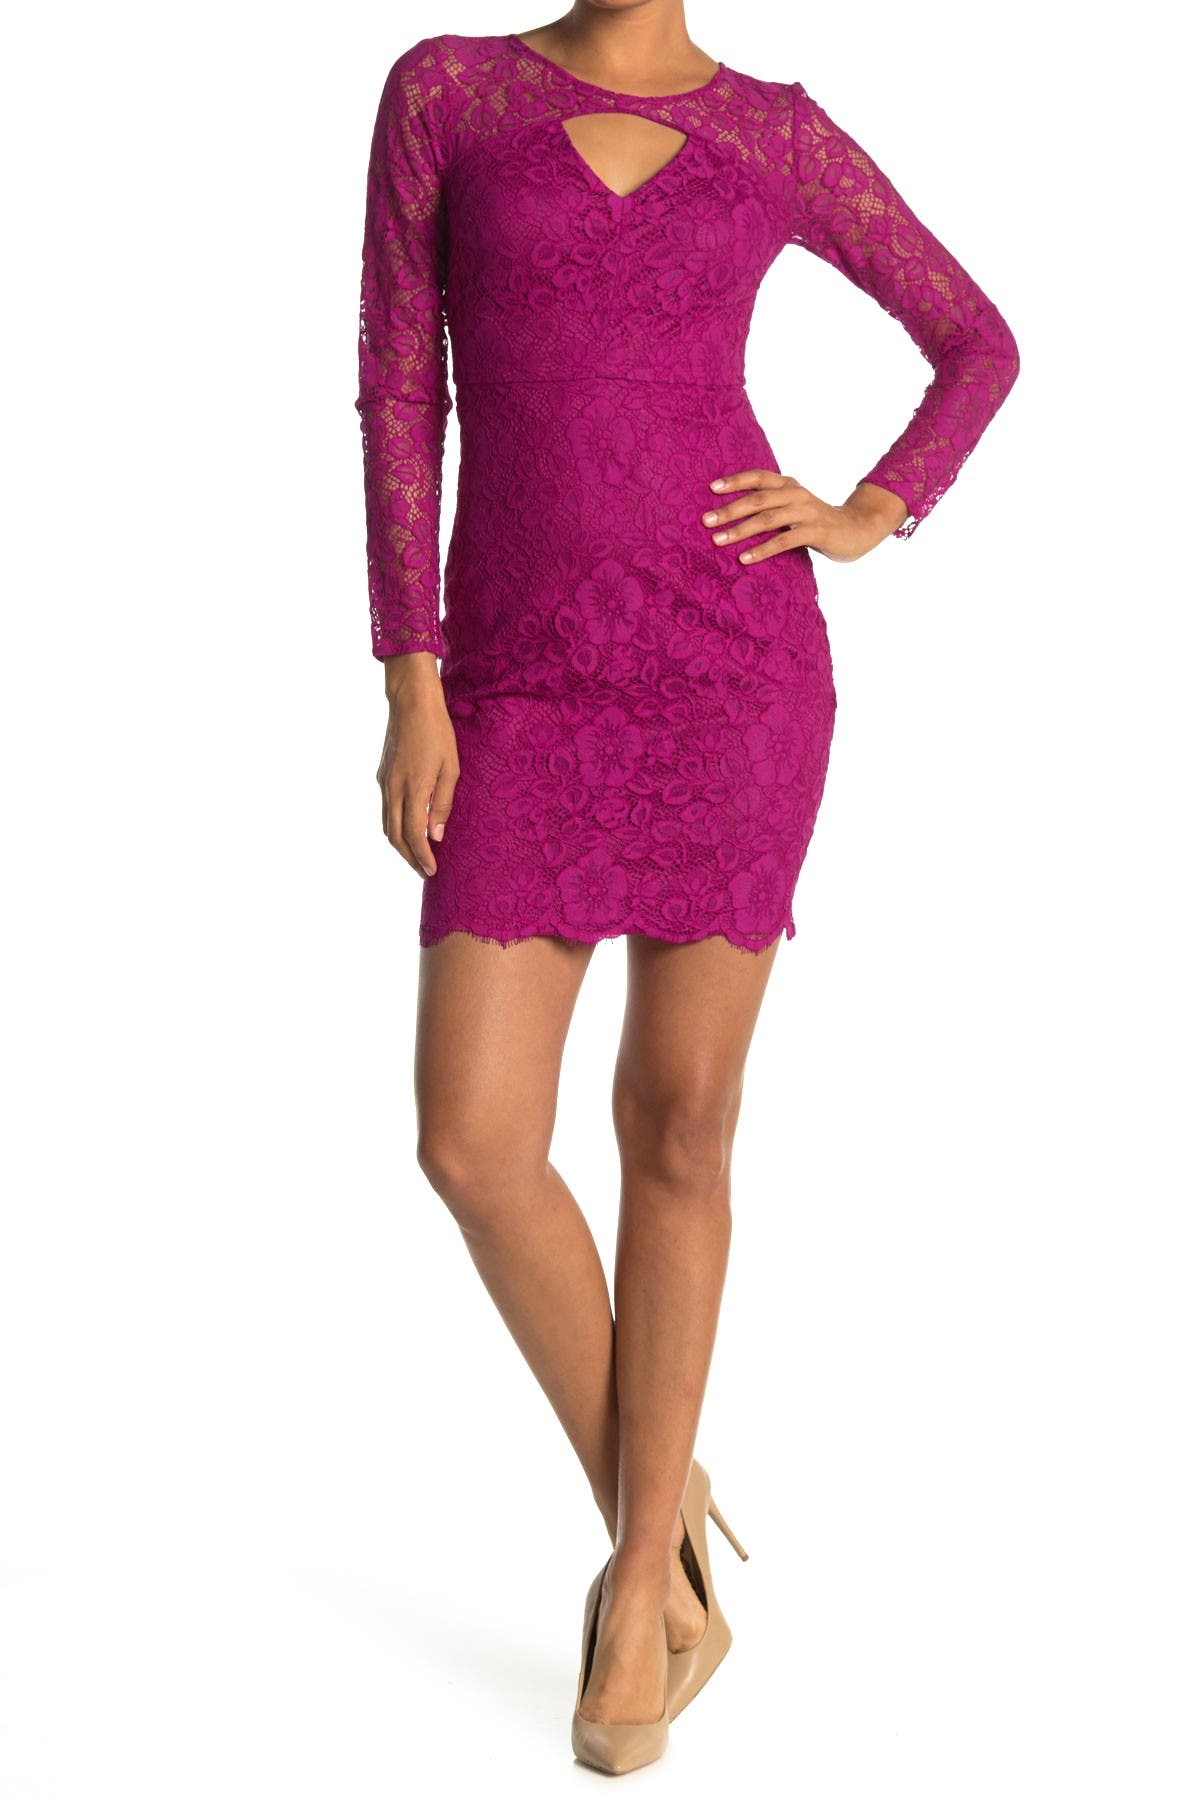 Image of GUESS Keyhole Long Sleeve Lace Sheath Dress